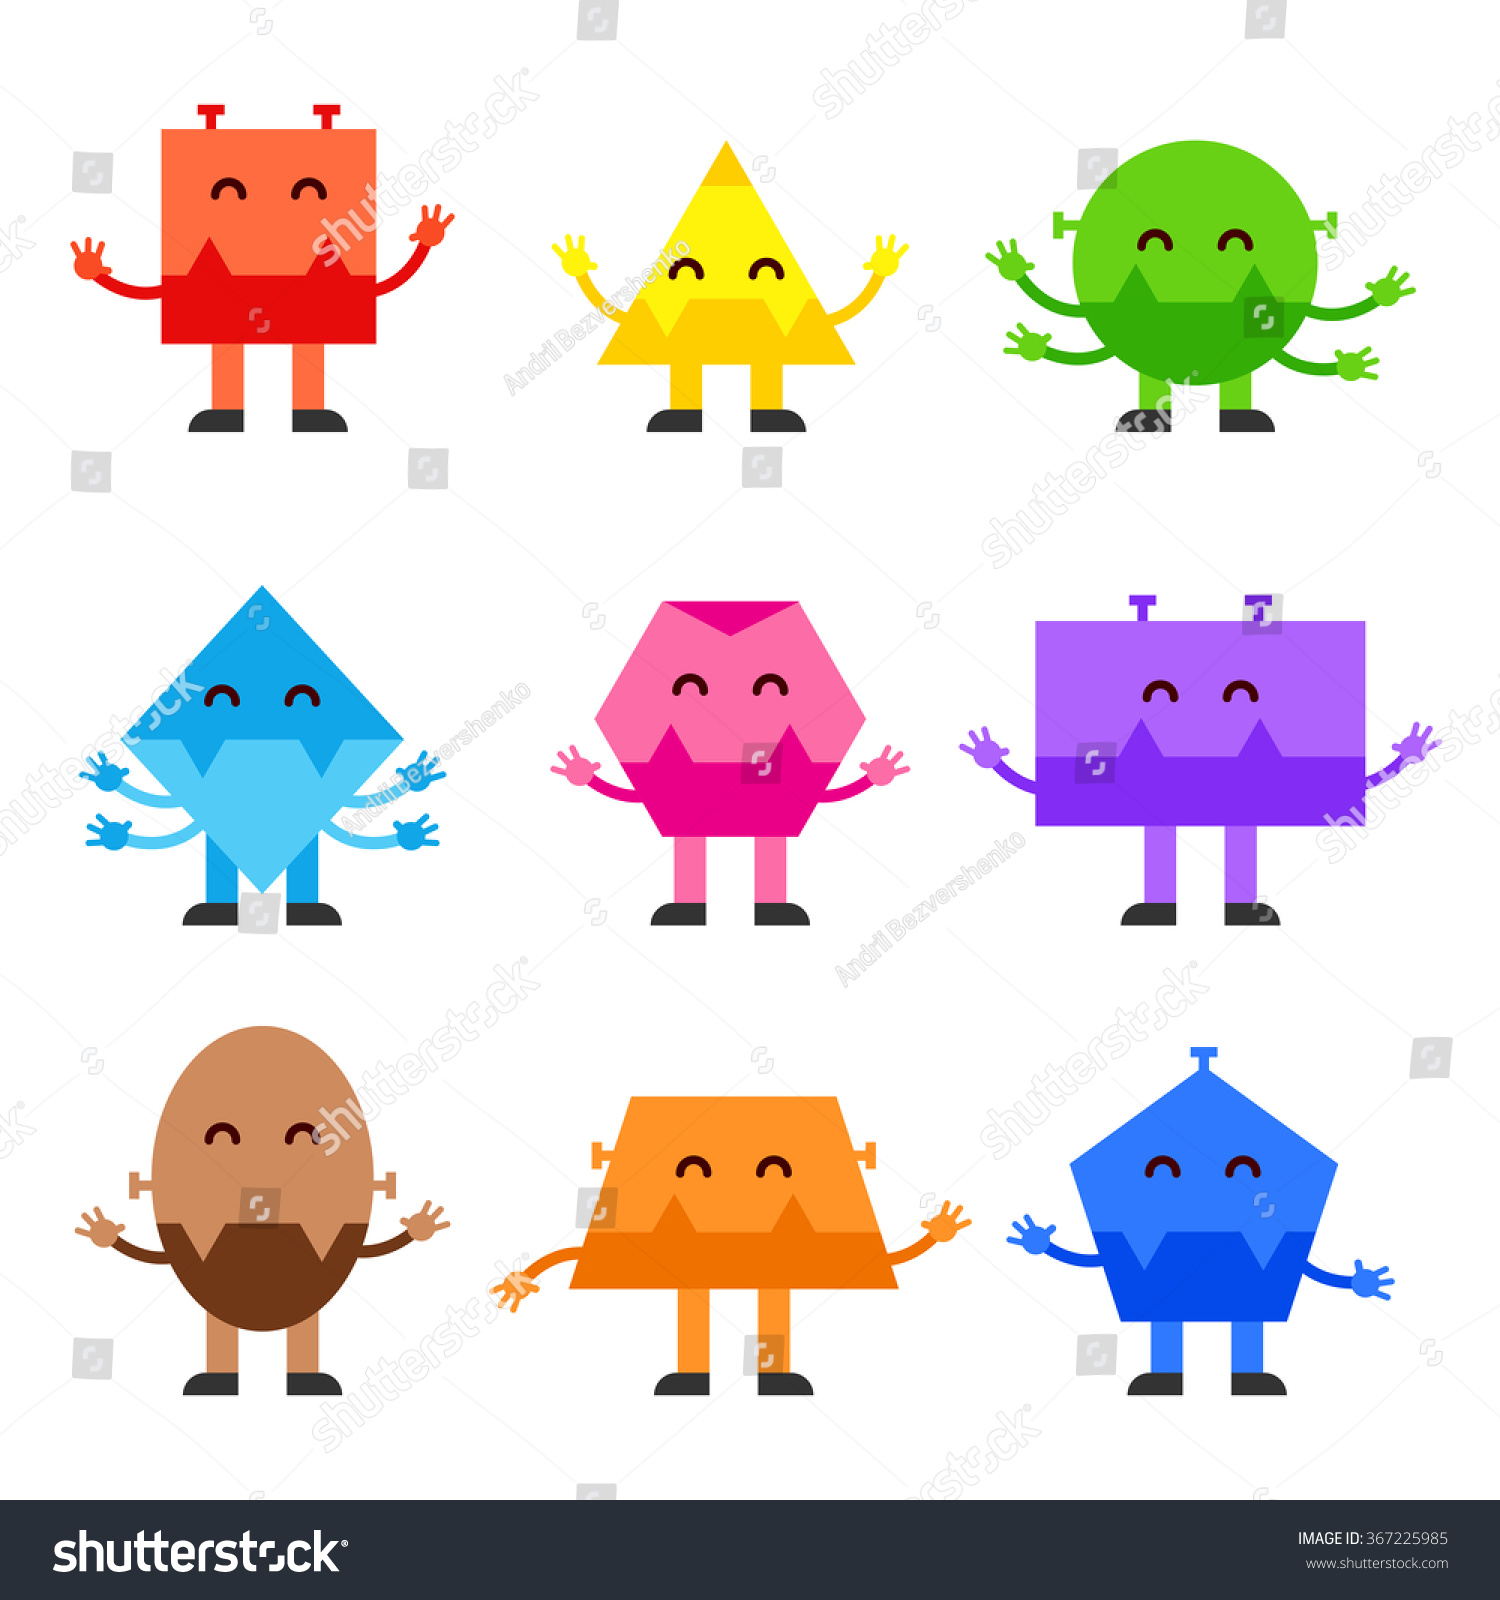 Character Design With Basic Shapes : Geometric shapes funny monsters cartoon vector character